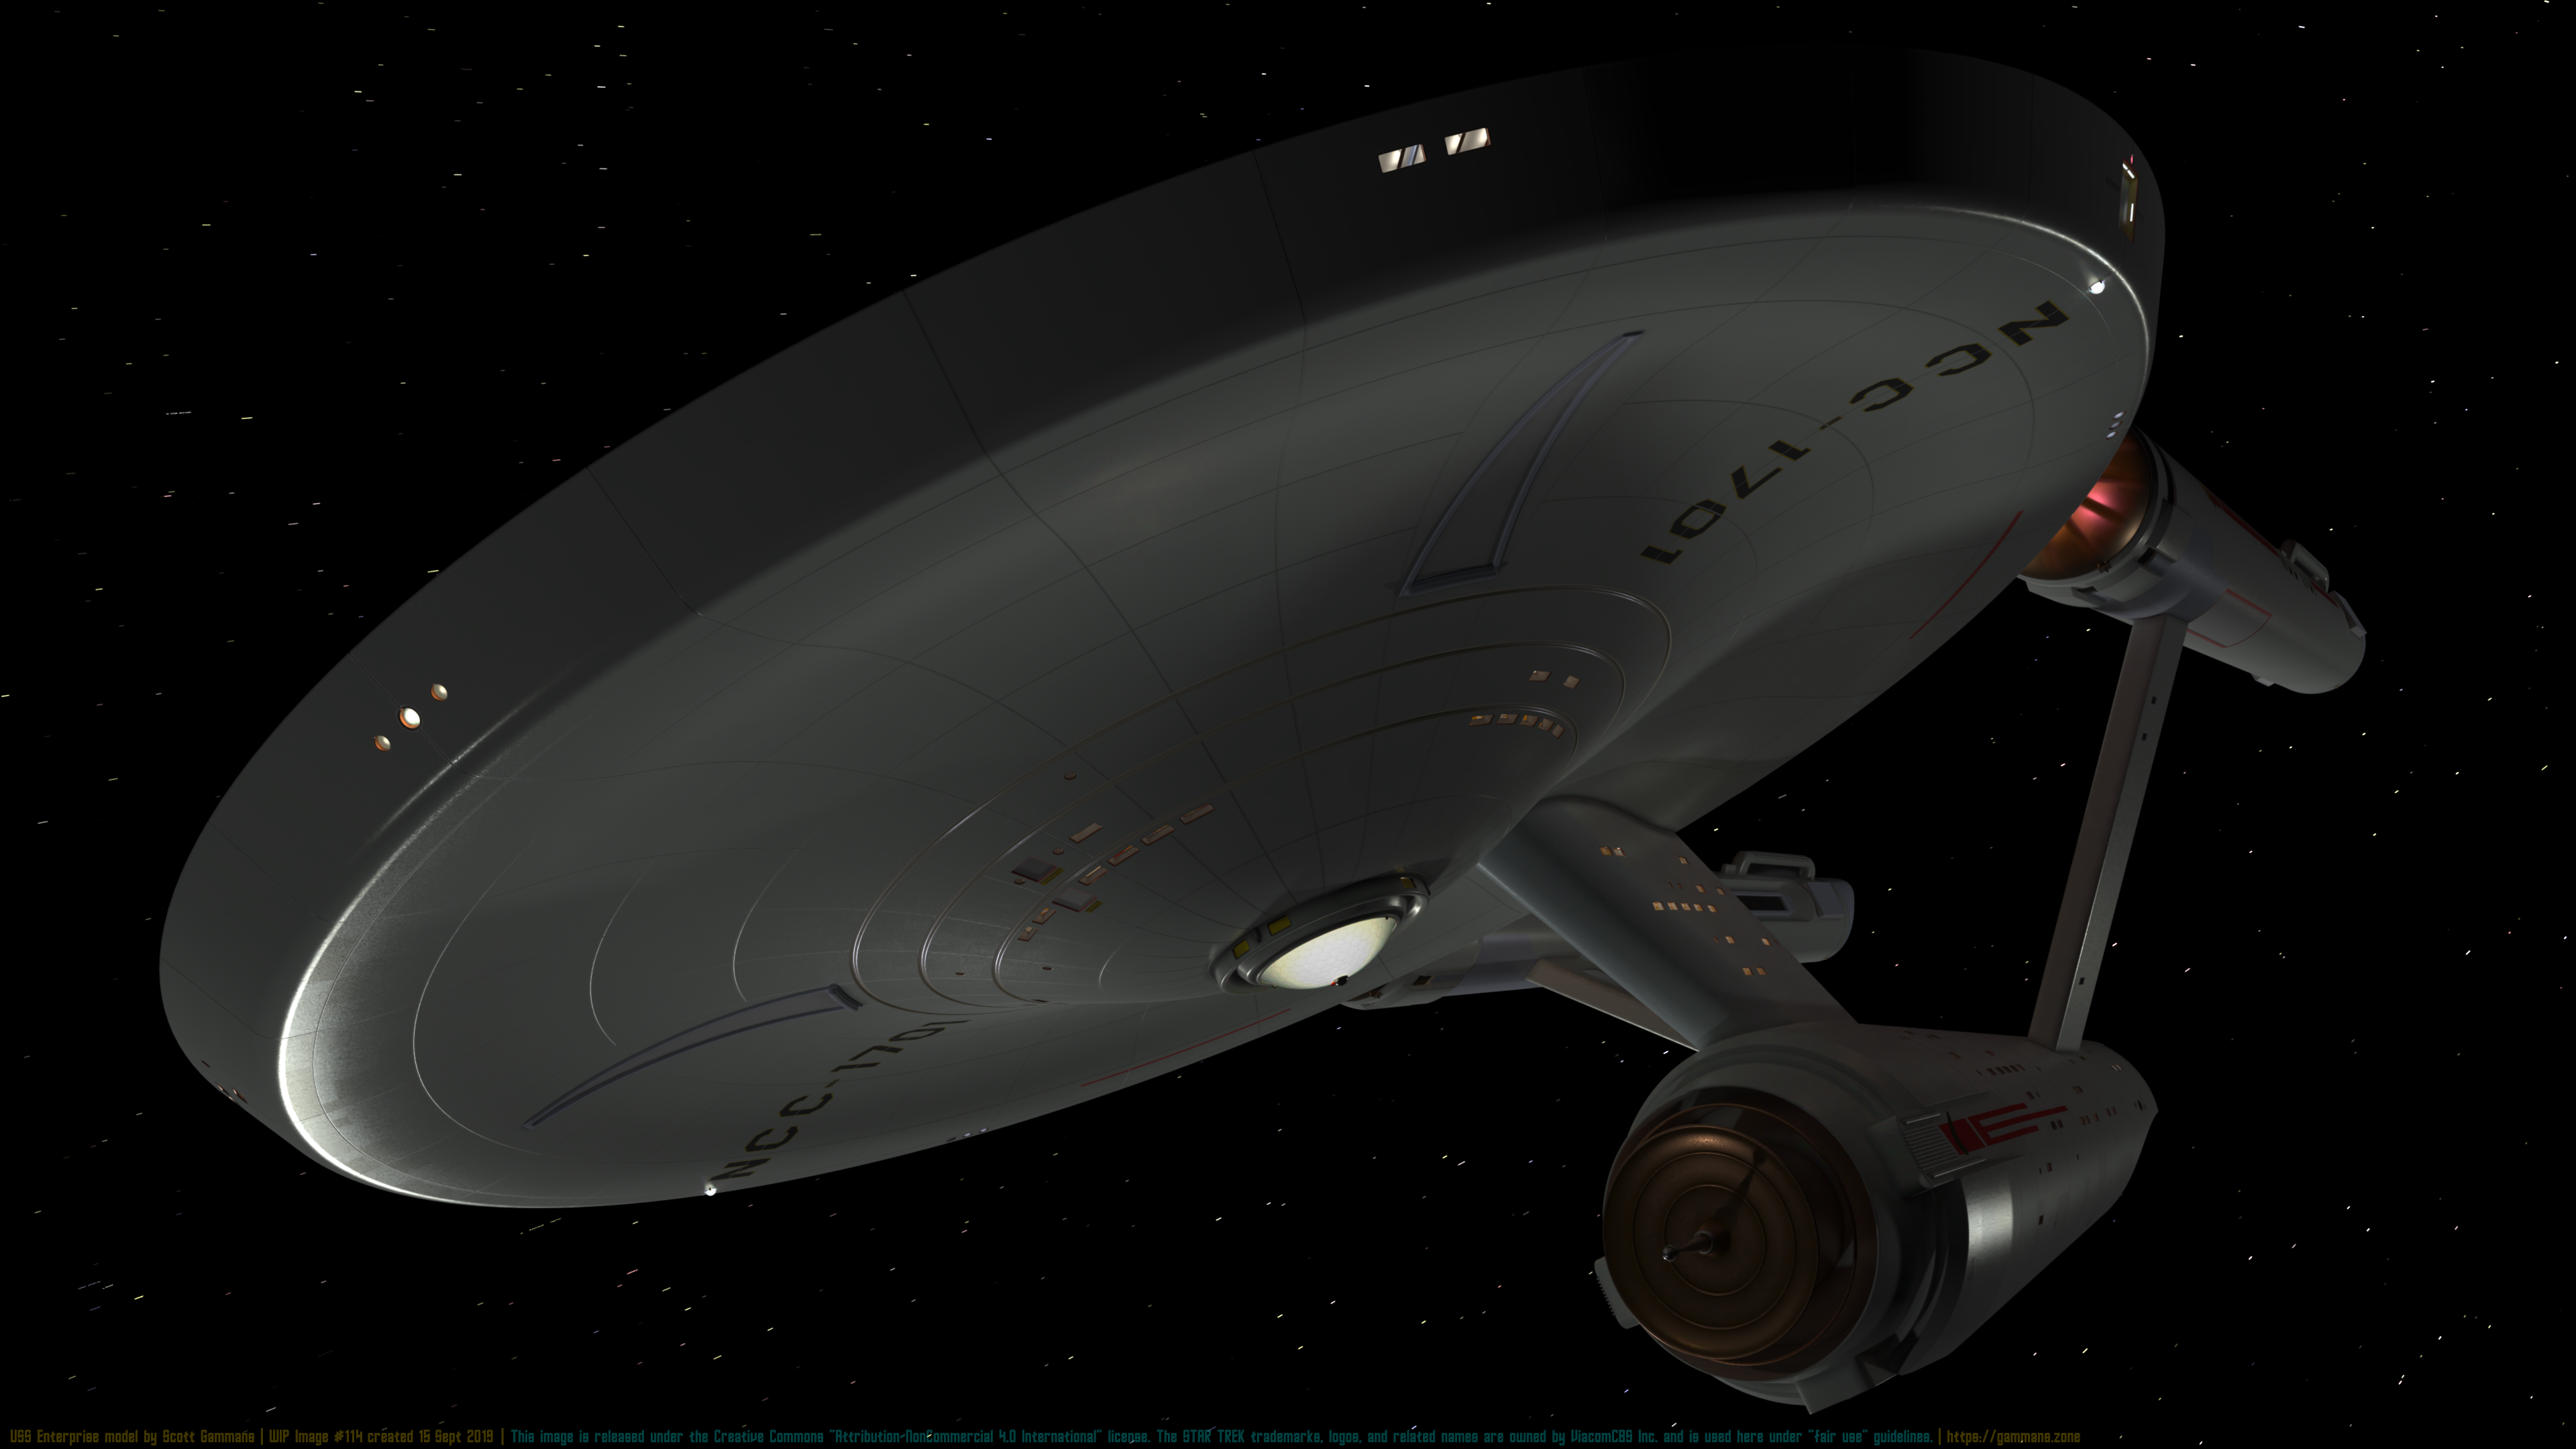 USS Enterprise WIP #114 September 15, 2019